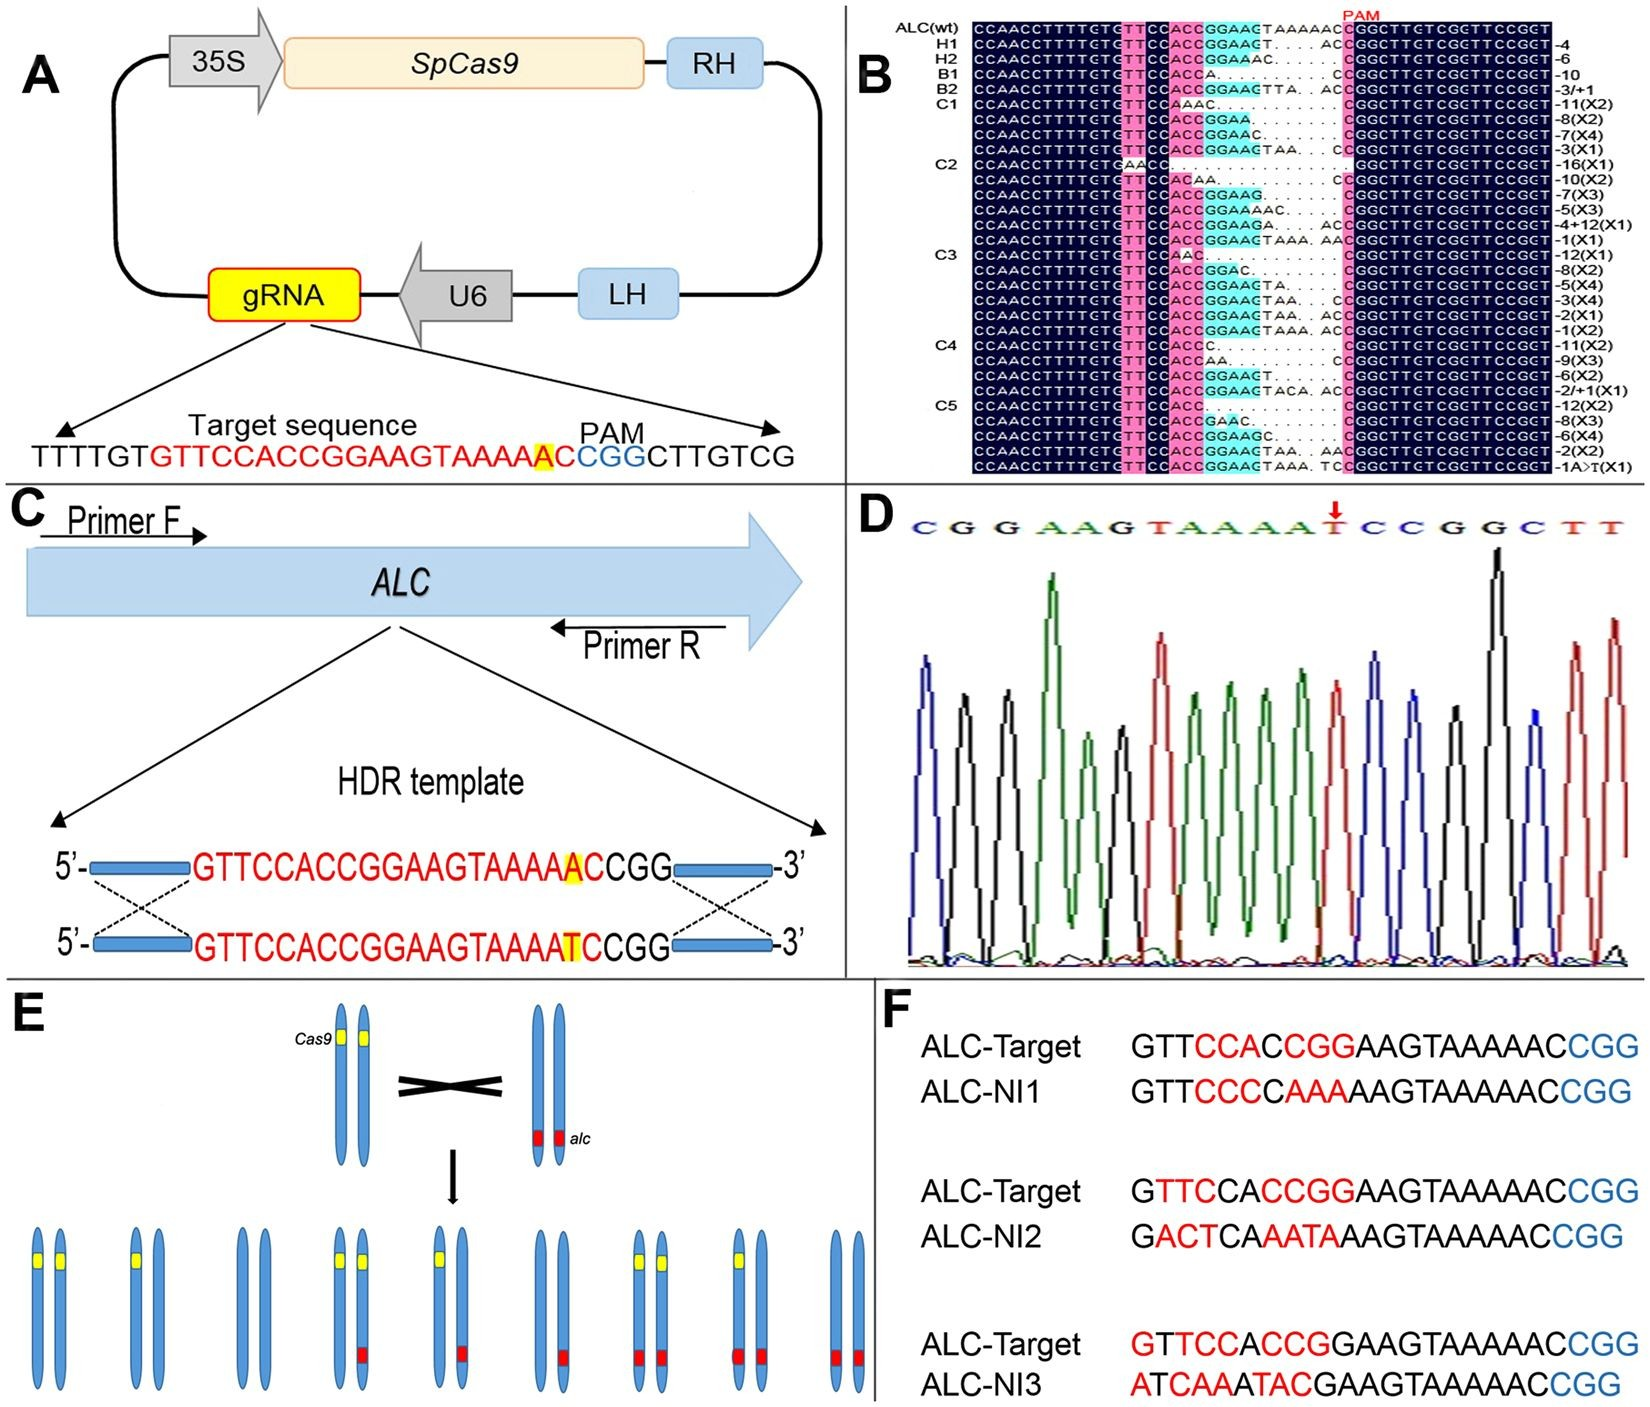 Double Wishbone Suspension Diagram Crispr Cas9 Induced Tar Ed Mutagenesis and Gene Replacement to Of Double Wishbone Suspension Diagram